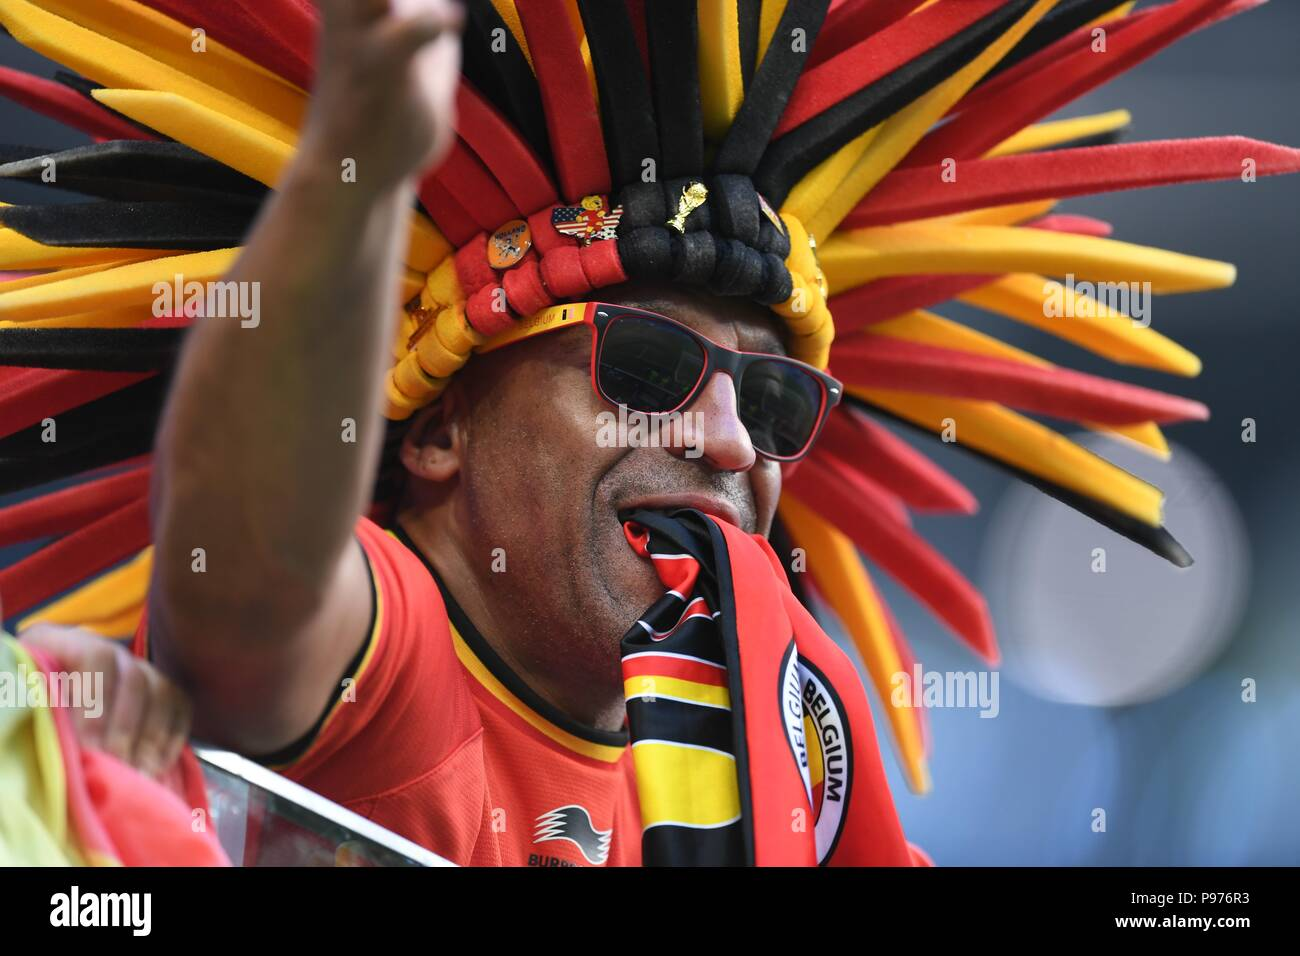 July 14th, 2018, St Petersburg, Russia. Football fans match between England and Belgium 2018 FIFA World Cup Russia 3rd Place Playoff at Saint-Petersburg Stadium, Russia. Shoja Lak/Alamy Live News - Stock Image